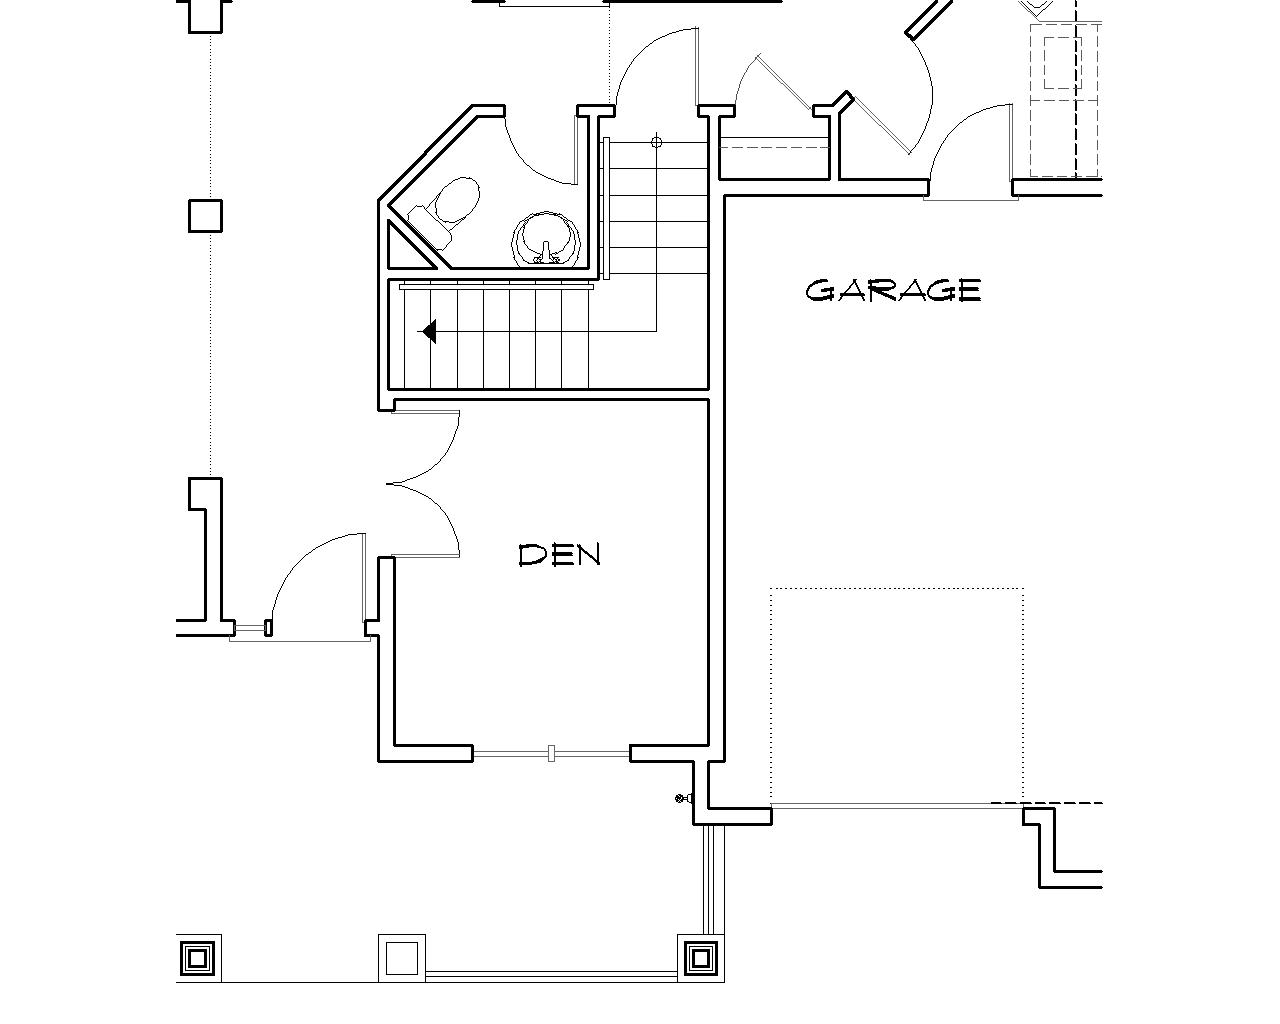 Basement Stair Location by DFD House Plans